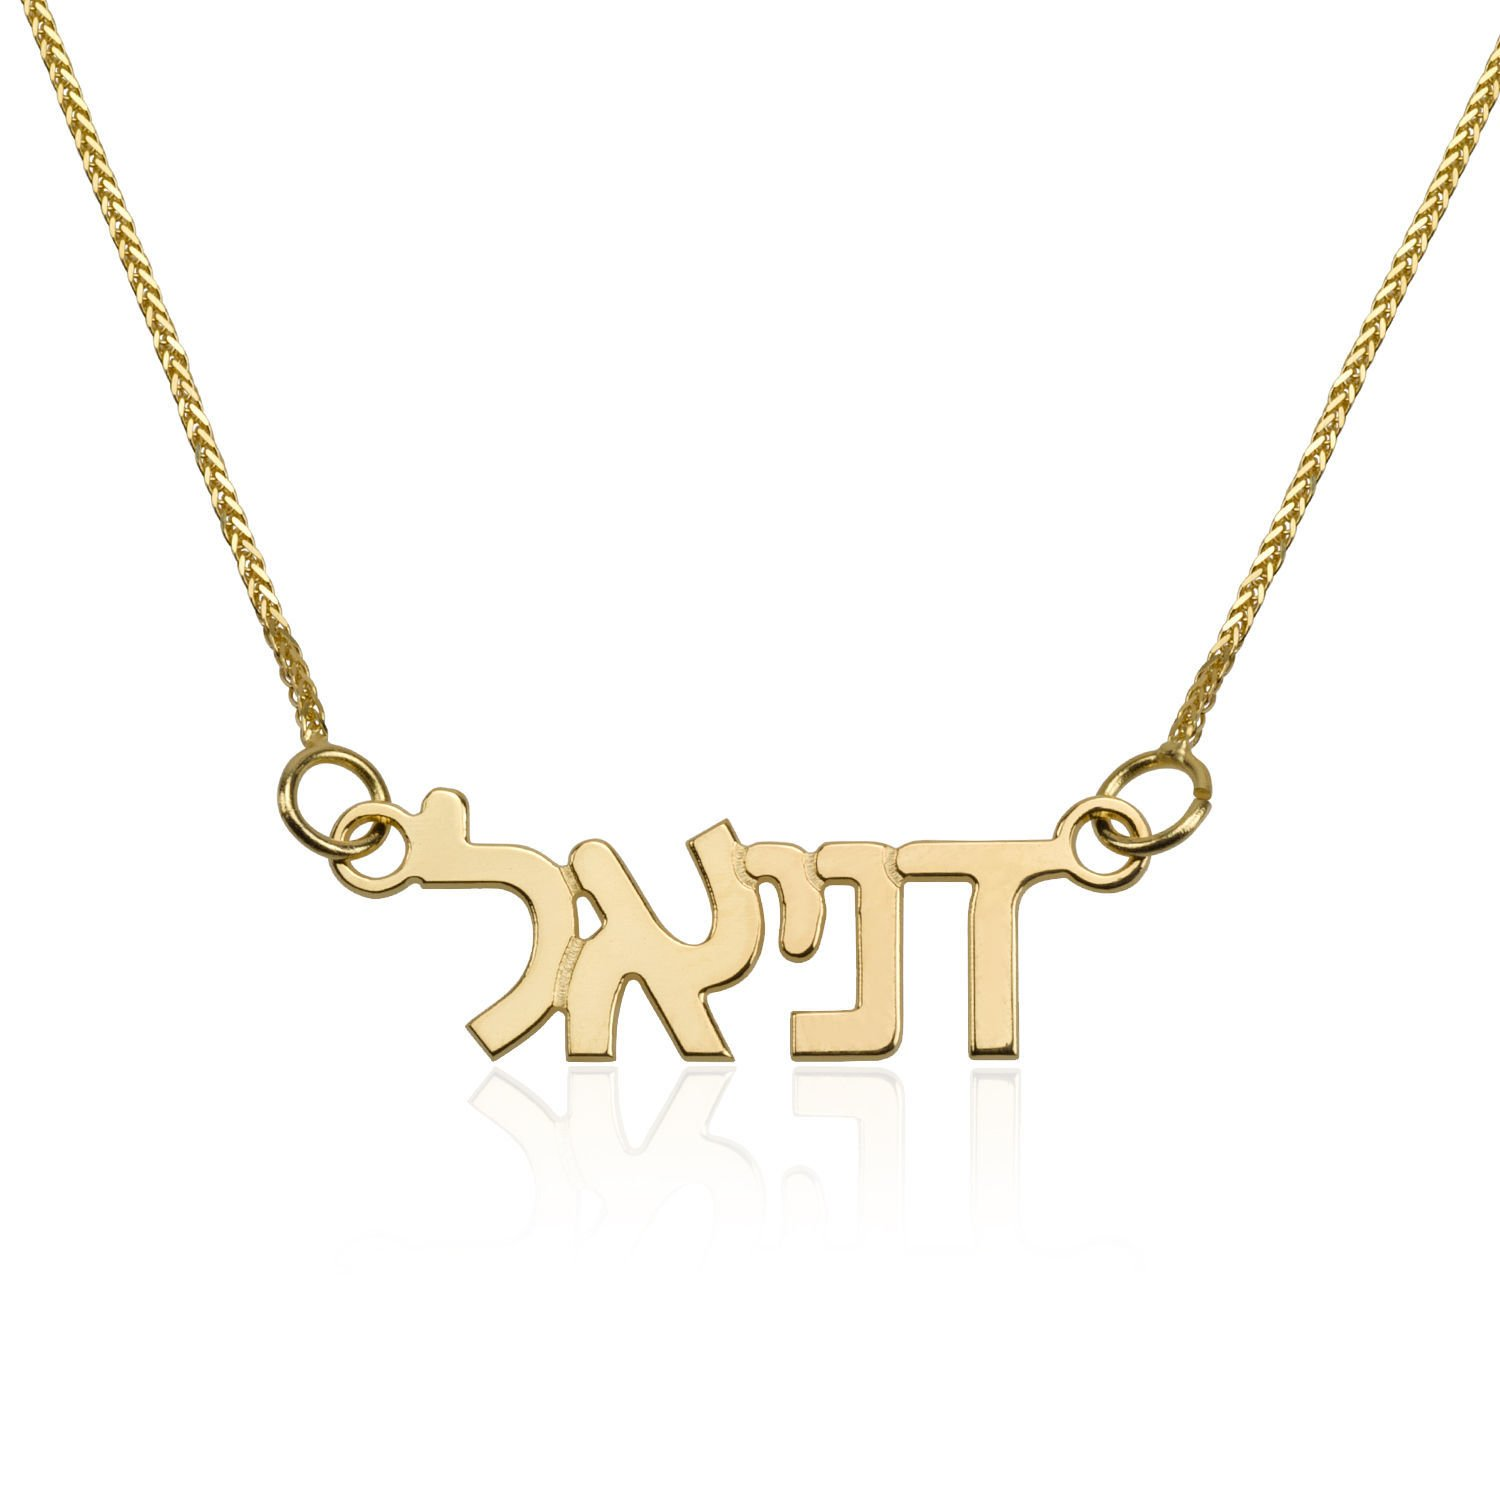 Women Name Necklace 14k Yellow Gold Hebrew Style Drums Pendant Jewelry Charm Chain Necklace Gift by youme Gold Jewelry